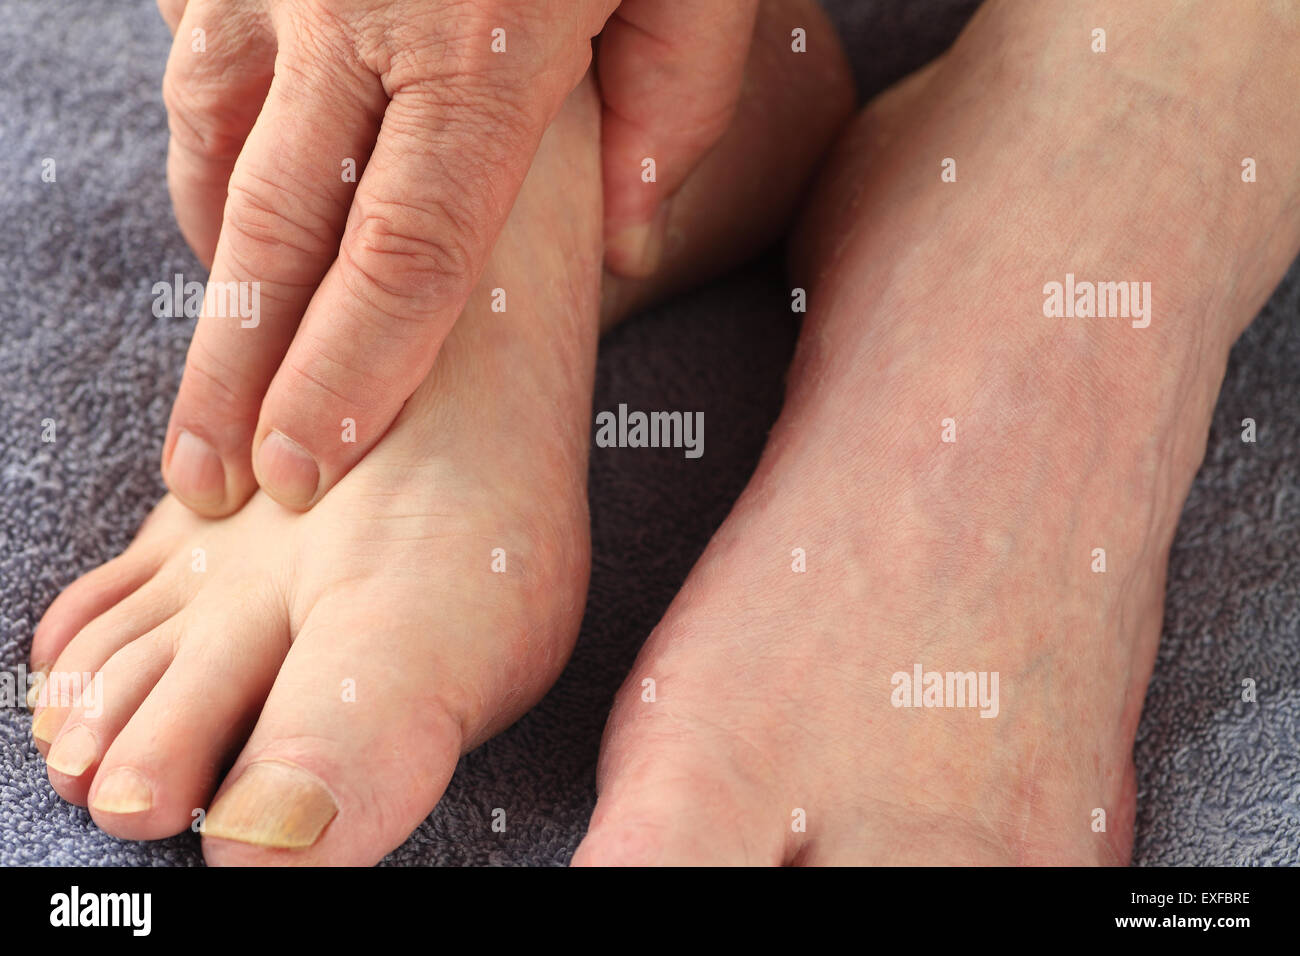 A man with his hand on one foot - Stock Image